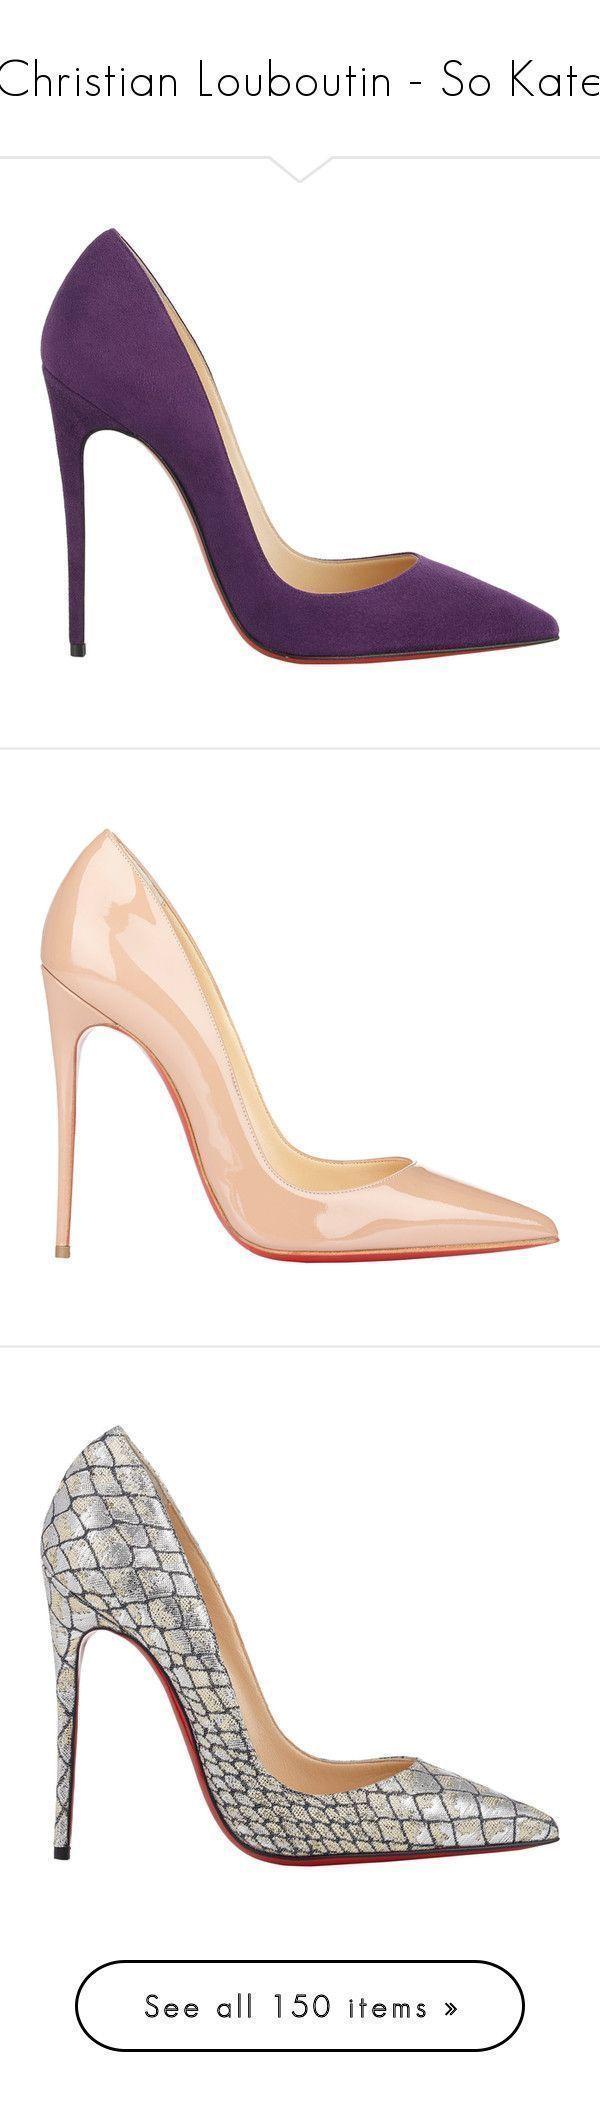 """""""Christian Louboutin - So Kate"""" by giovanna1995 ❤ liked on Polyvore featuring Pumps, christianlouboutin, sokate, shoes, pumps, heels, christian louboutin, high heels, purple and suede pumps #christianlouboutinsokate #christianlouboutinheels #christianlouboutinpumps"""